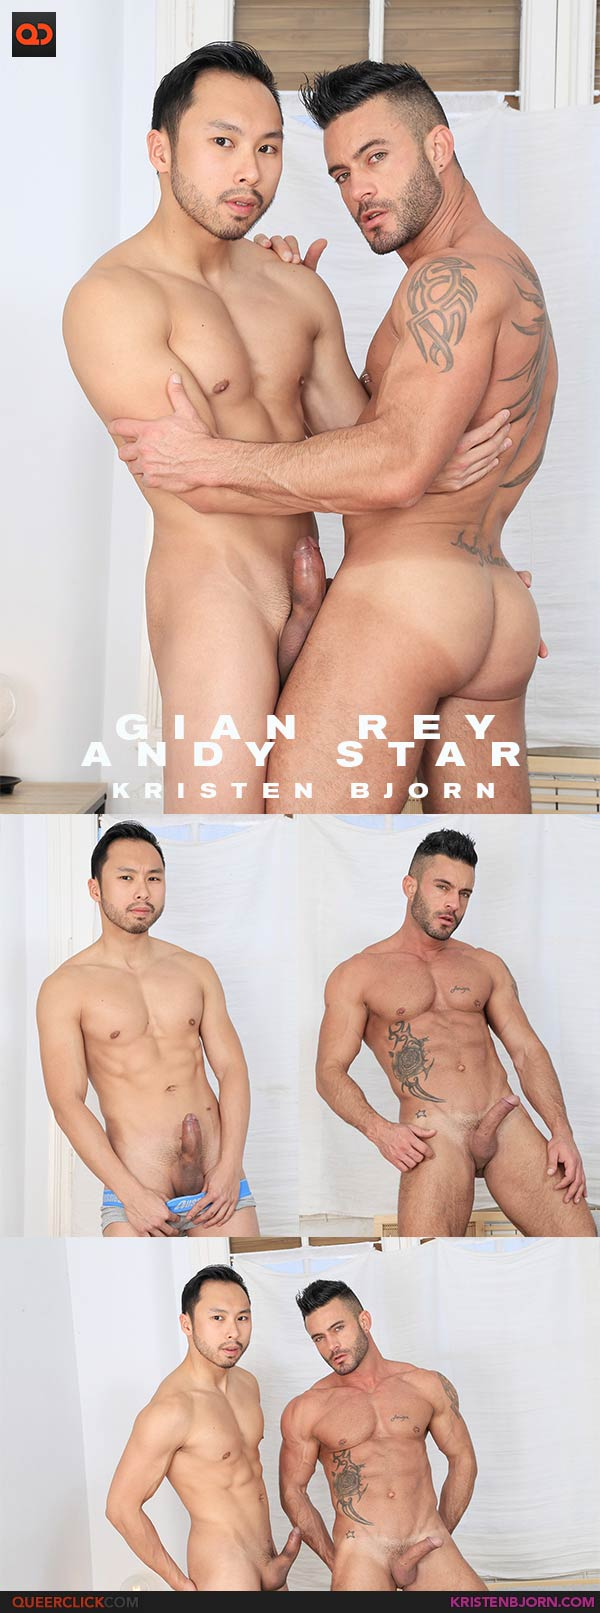 KristenBjorn: Gian Rey and Andy Star